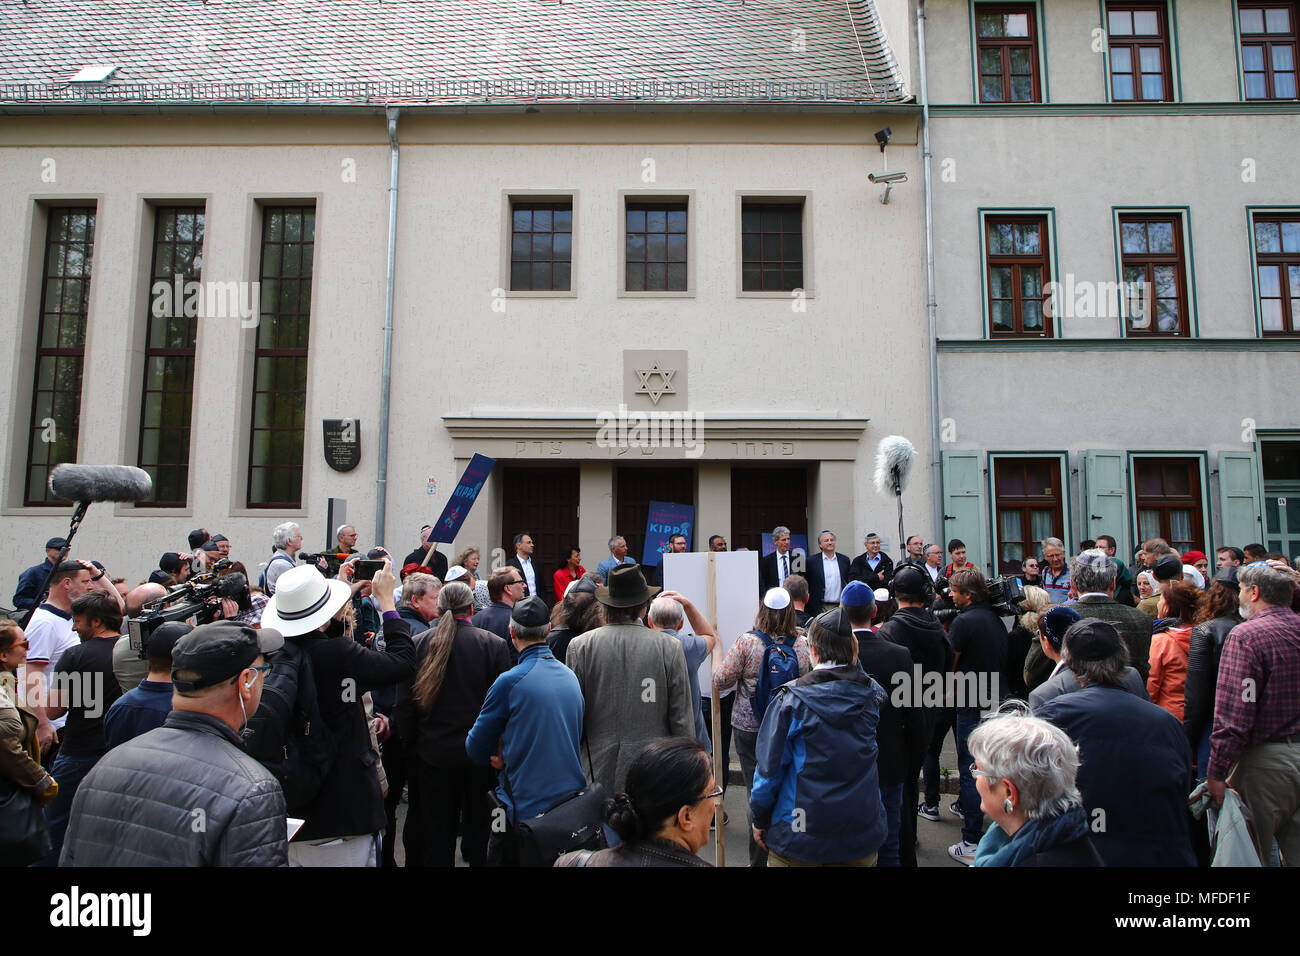 Erfurt, Germany. 25 April Germany, Germany, Erfurt: Participants gather for a demonstration in front of the new synagogue in Erfurt in order to take a stance against anti-Semitism and exclusion. Photo: Bodo Schackow/dpa-Zentralbild/dpa Credit: dpa picture alliance/Alamy Live News - Stock Image